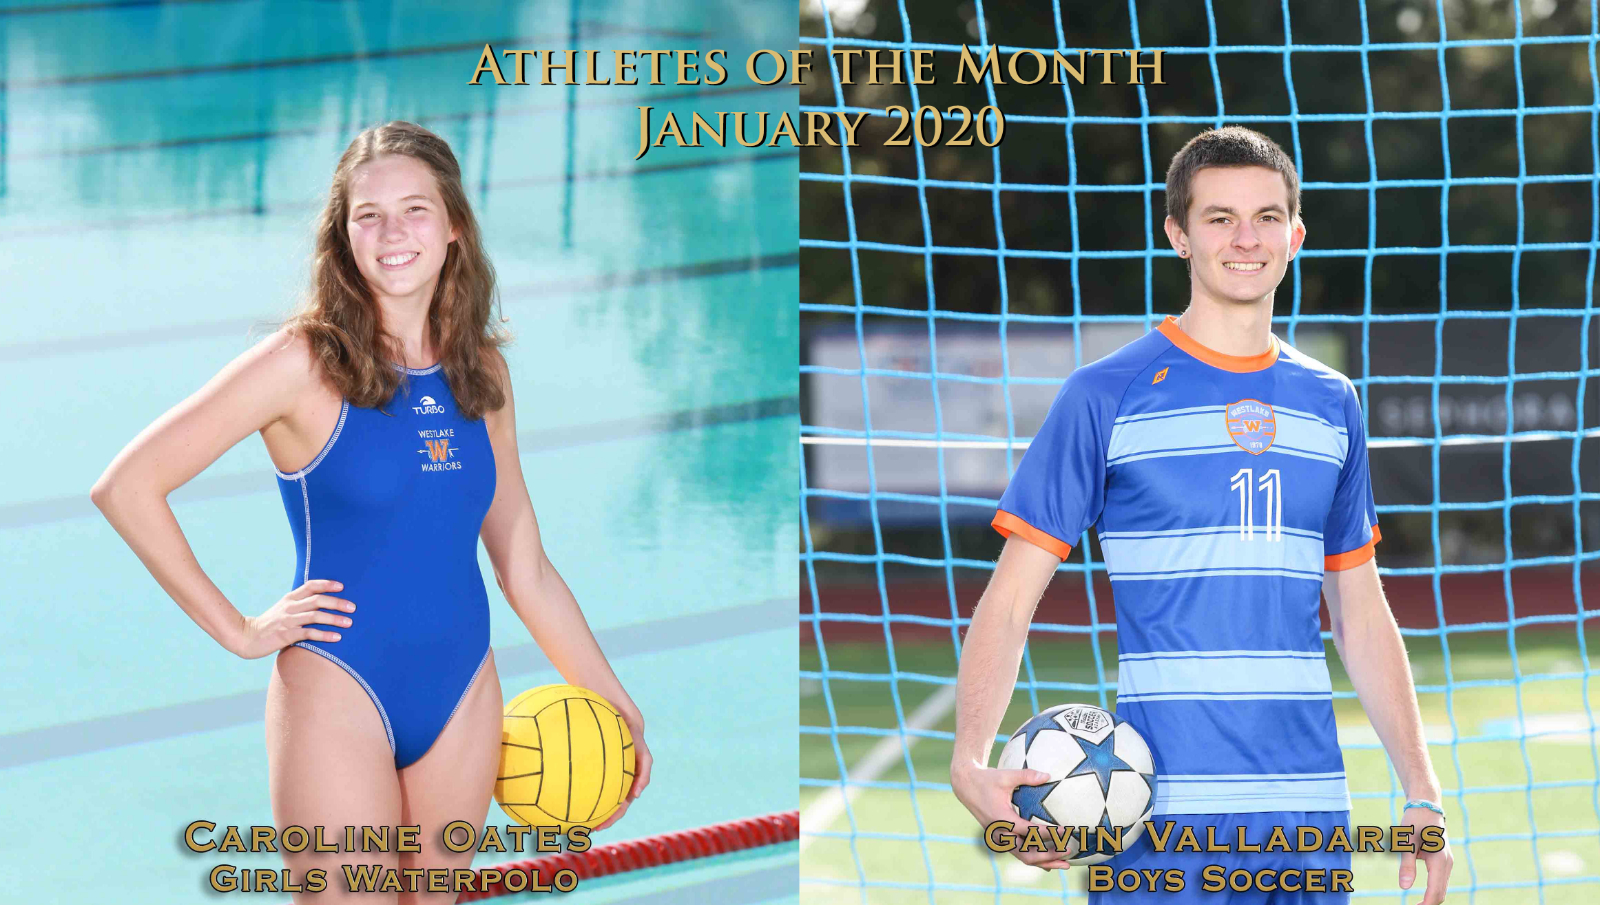 Oates and Valladares Earn Athlete of the Month Honors